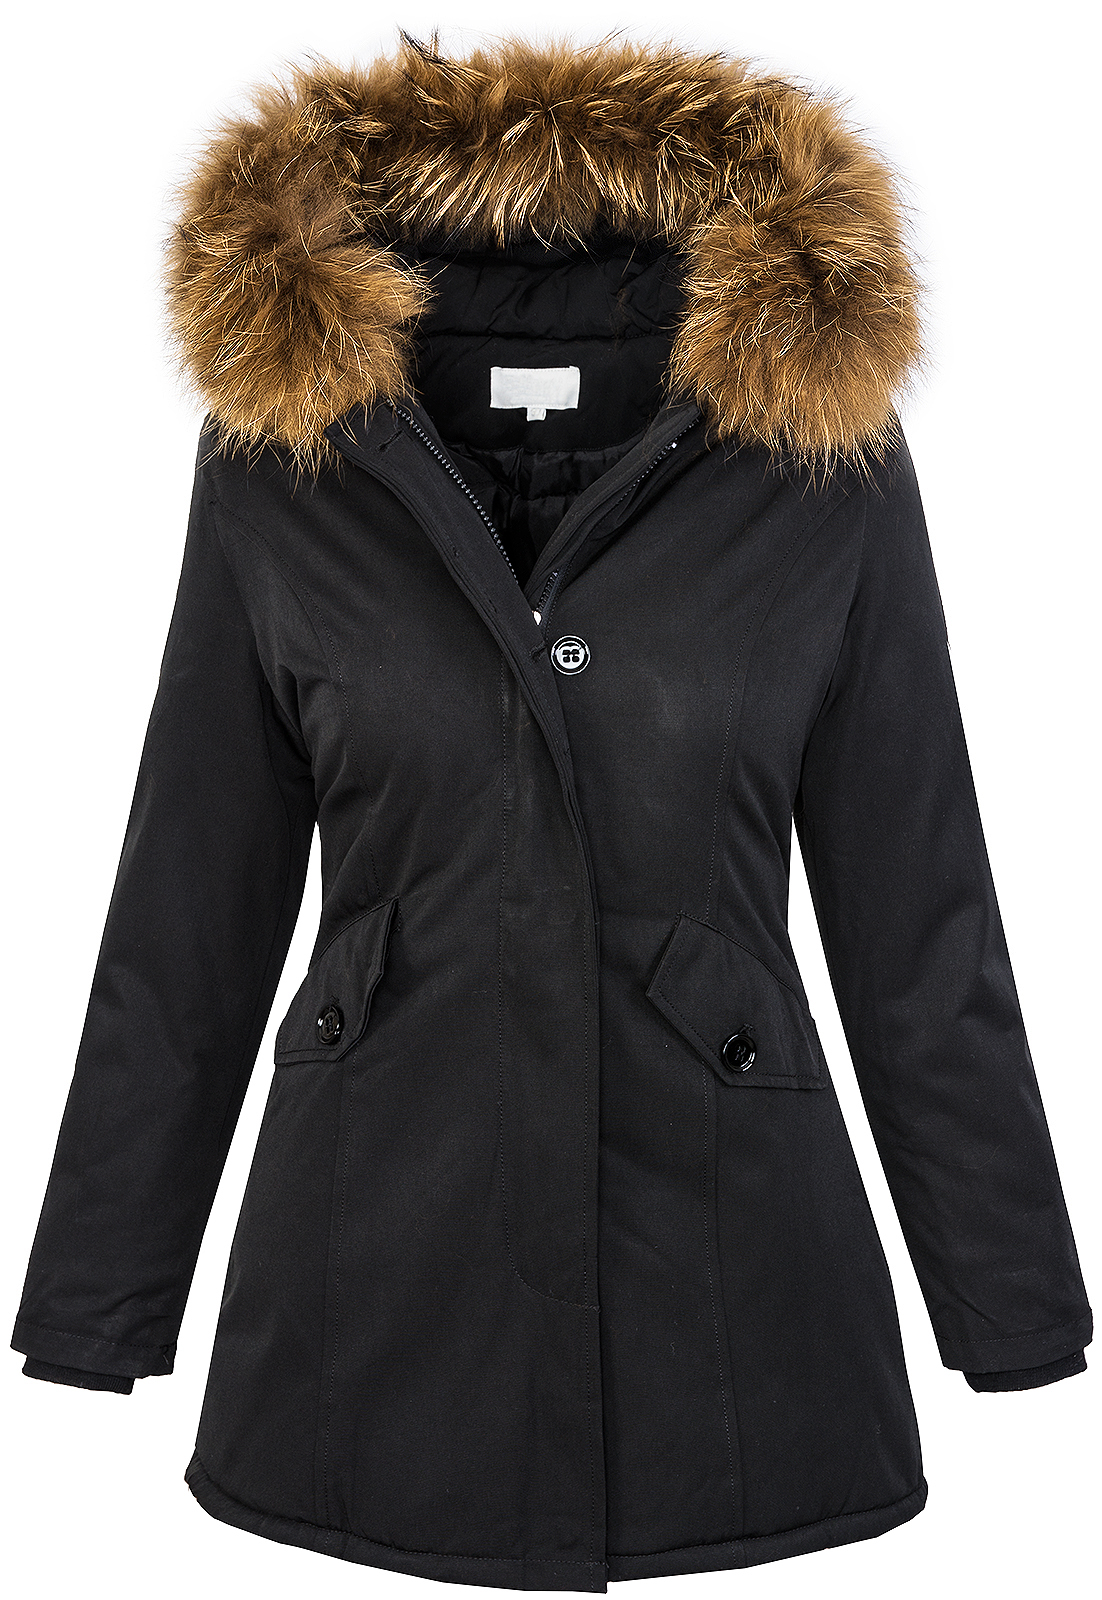 damen designer winter jacke parka outdoor jacke damenjacke. Black Bedroom Furniture Sets. Home Design Ideas